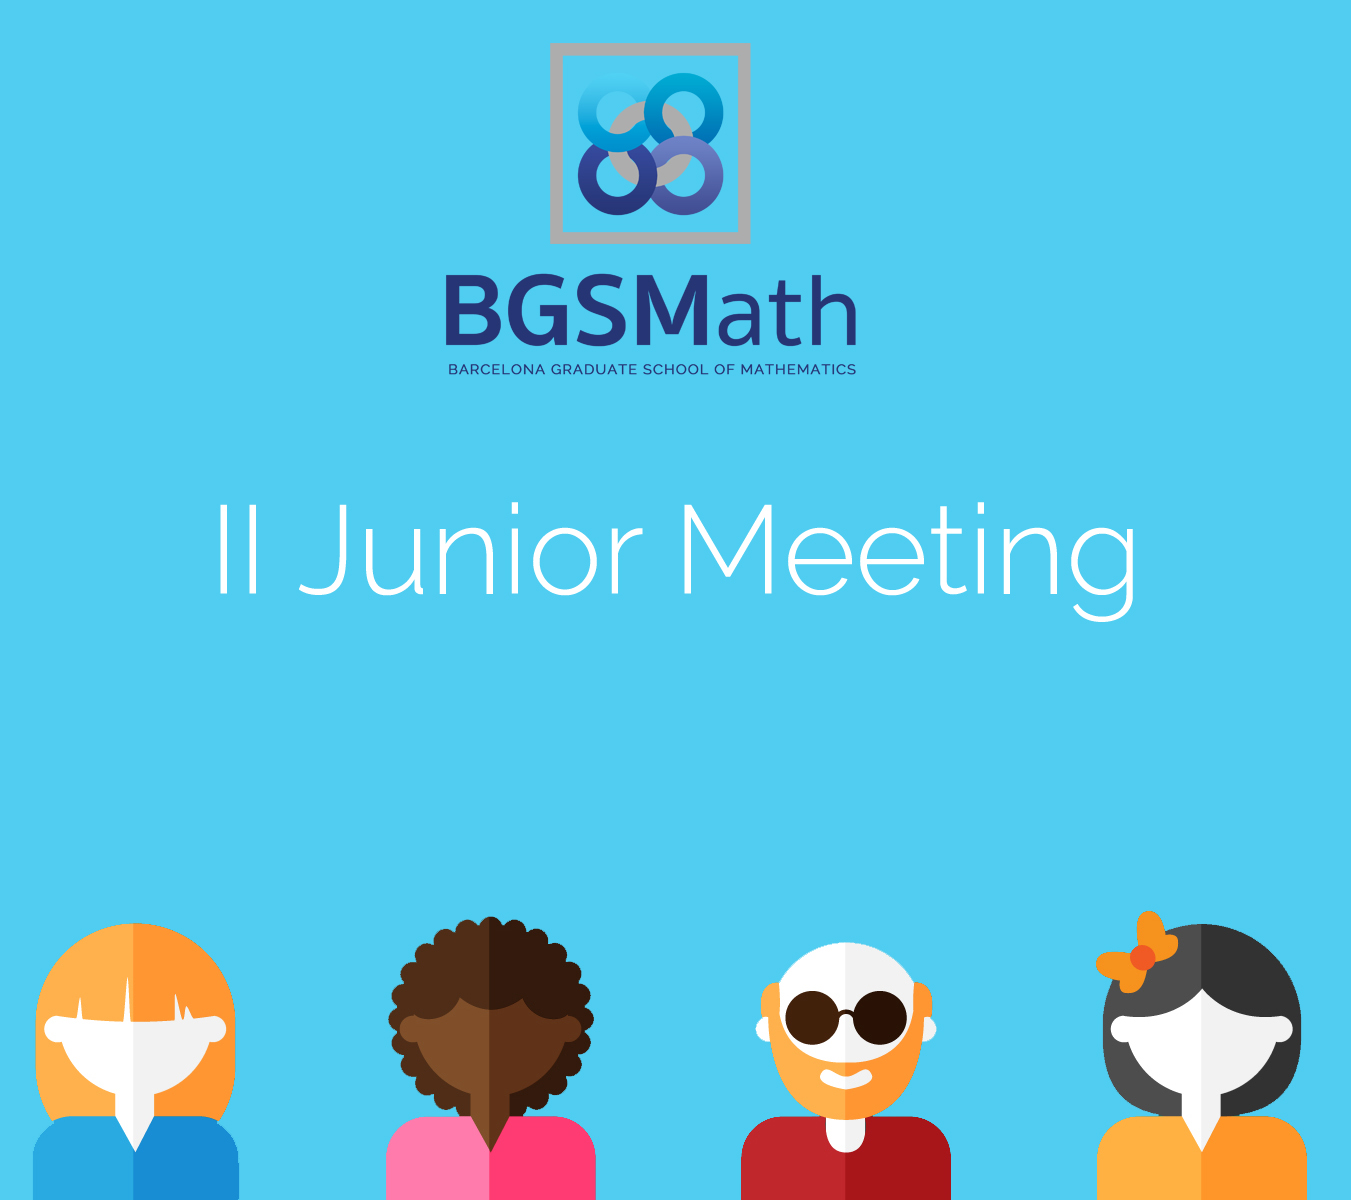 BGSMath Junior Meeting